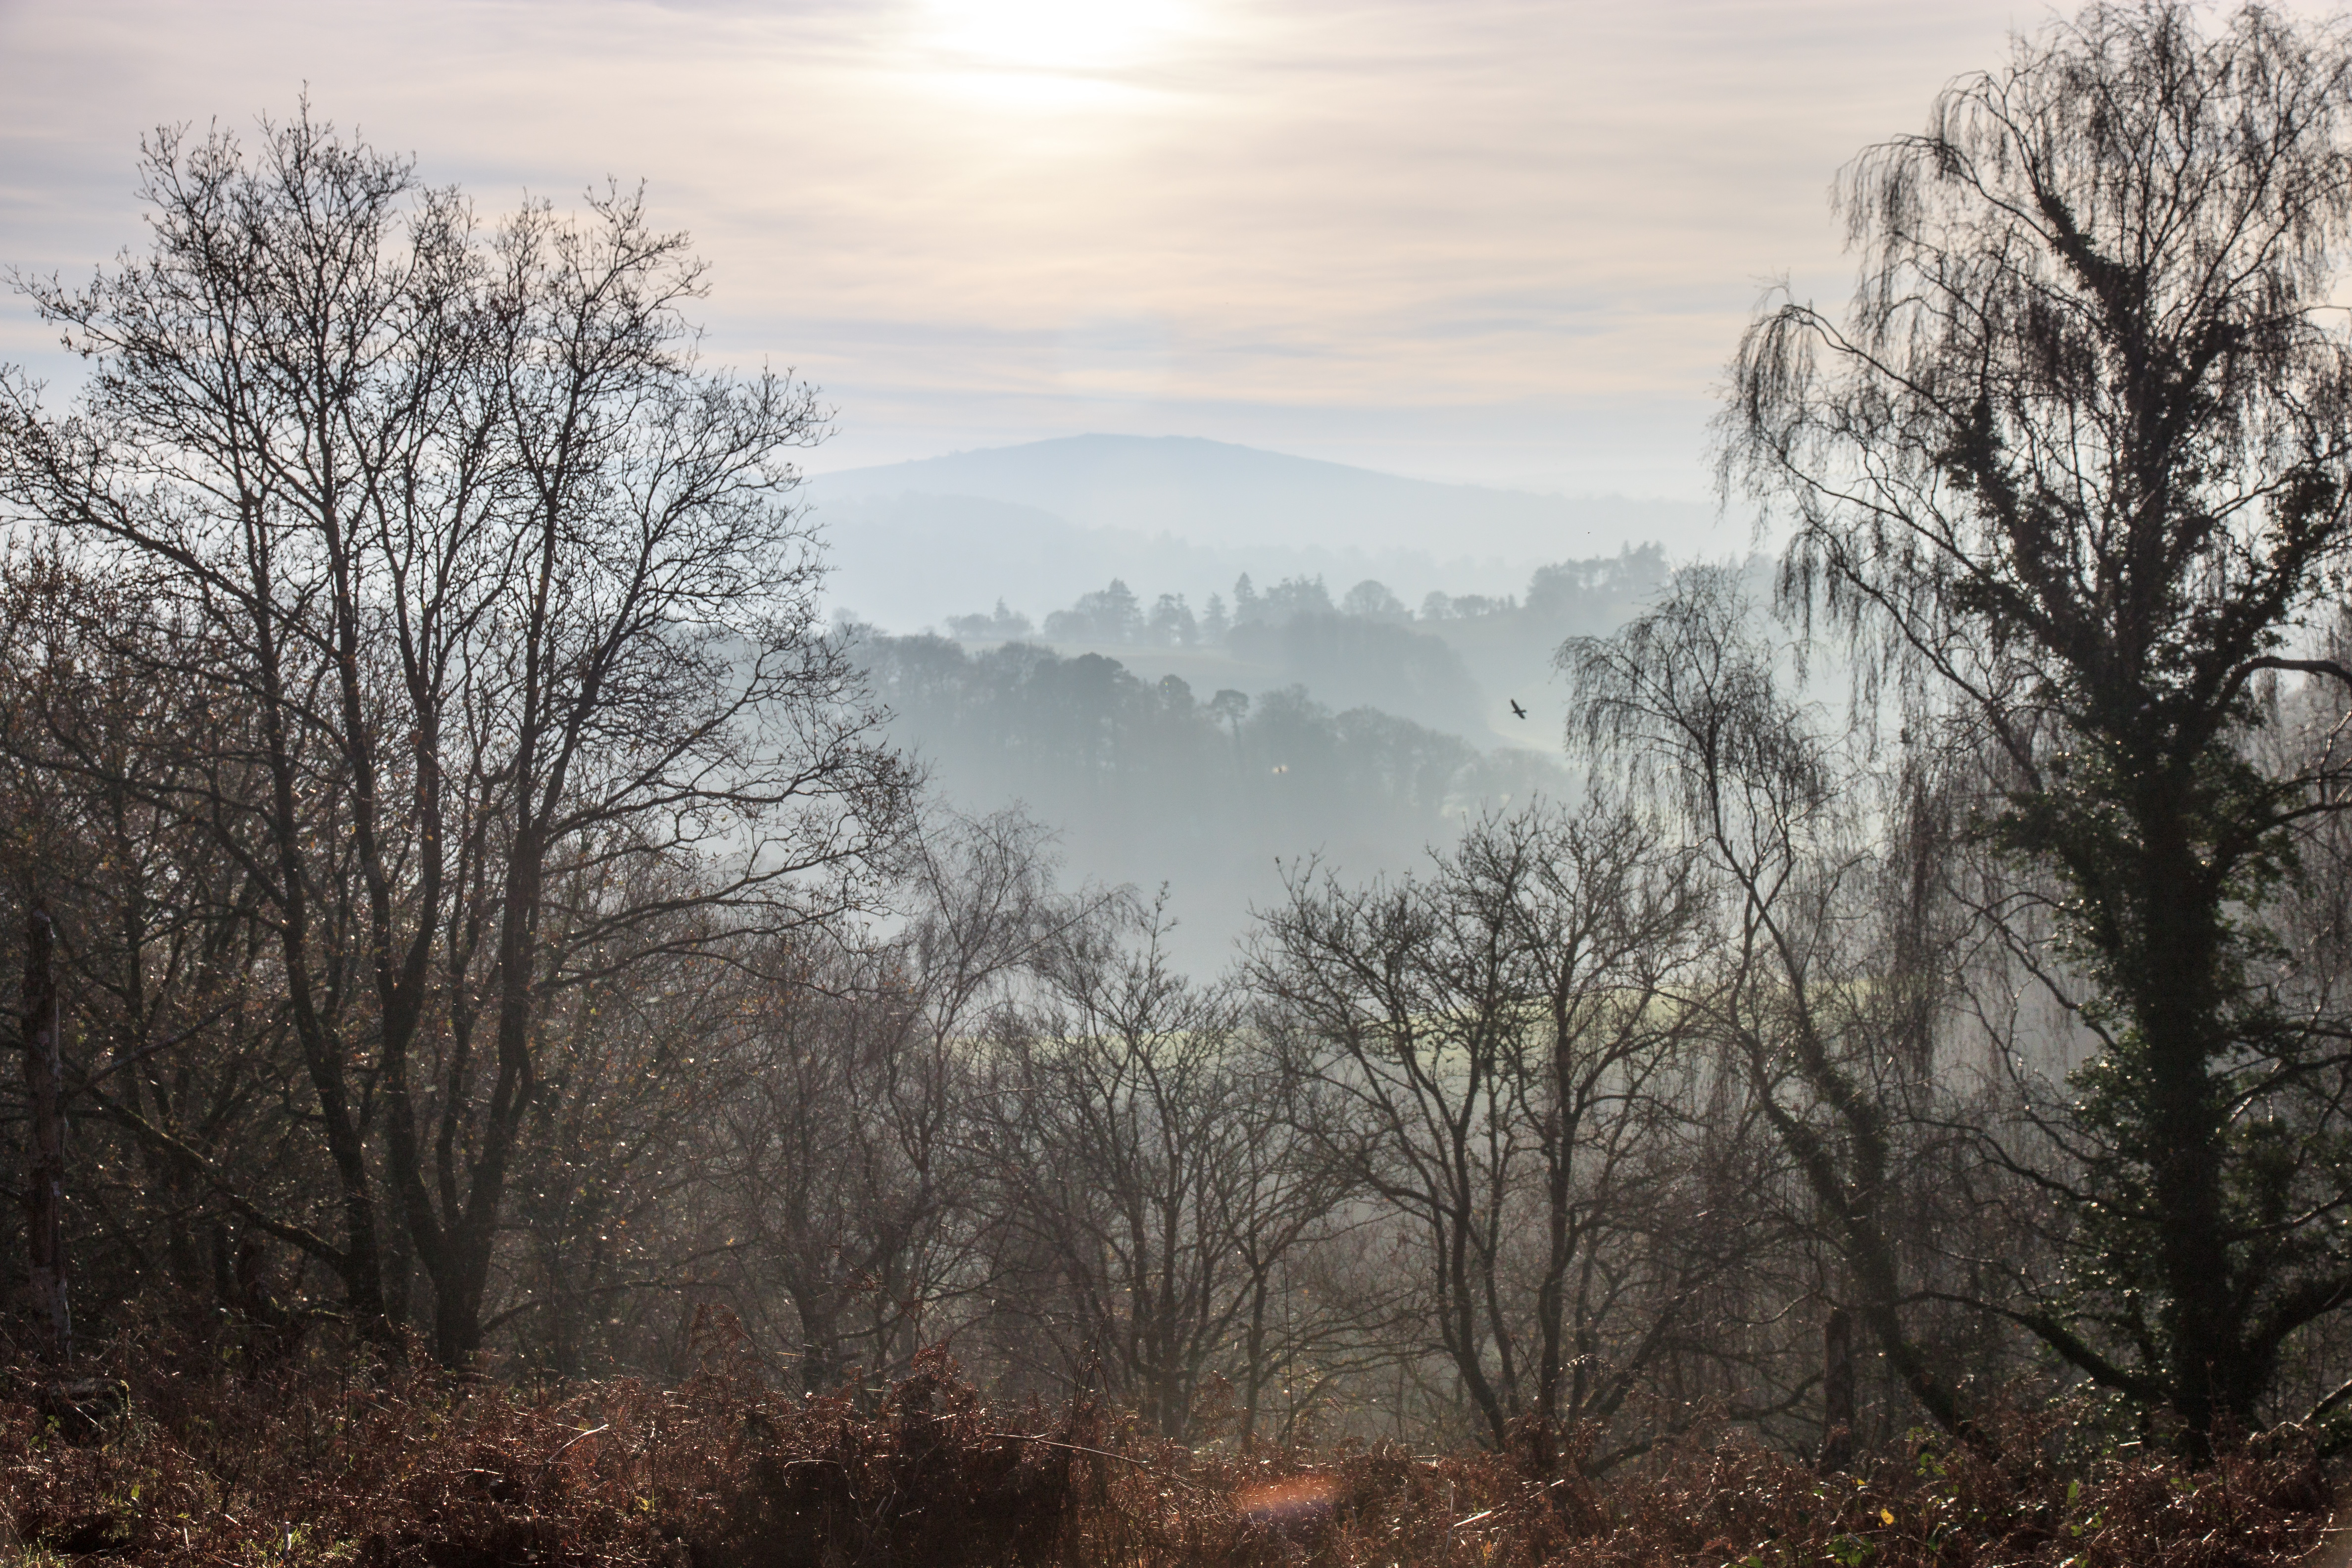 View towards Dartmoor from above the River Teign Gorge